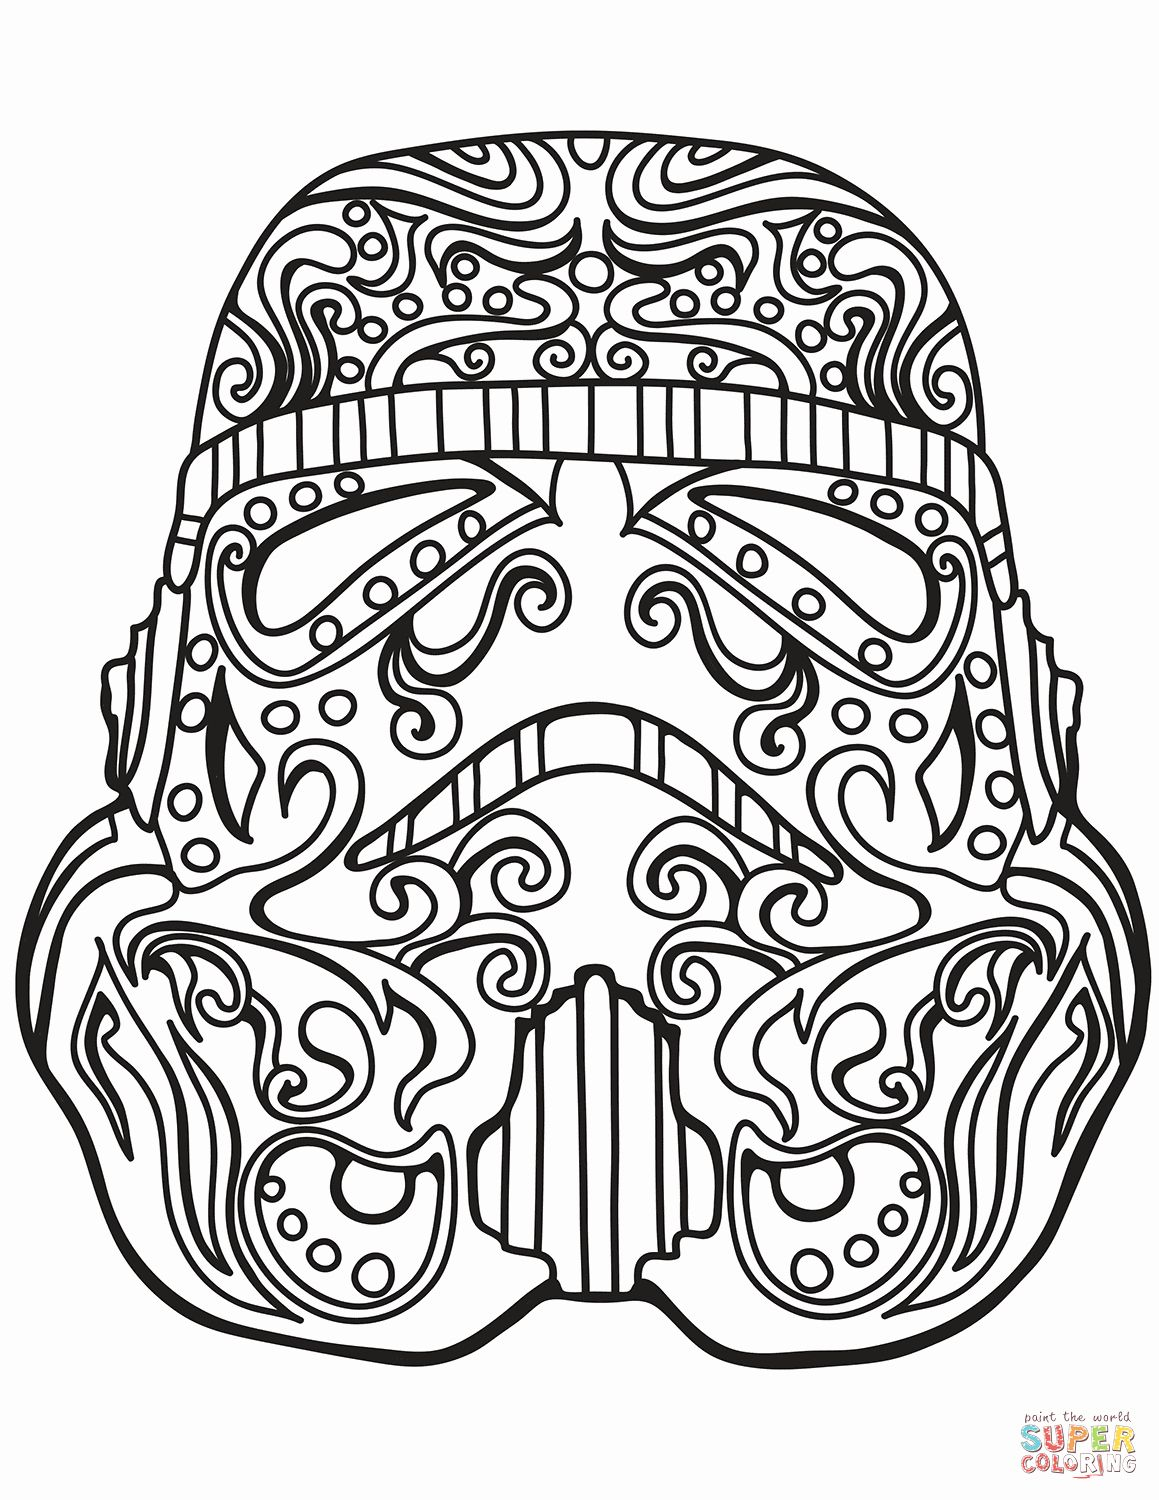 Adult Coloring Pages Star Wars in 2020 Skull coloring